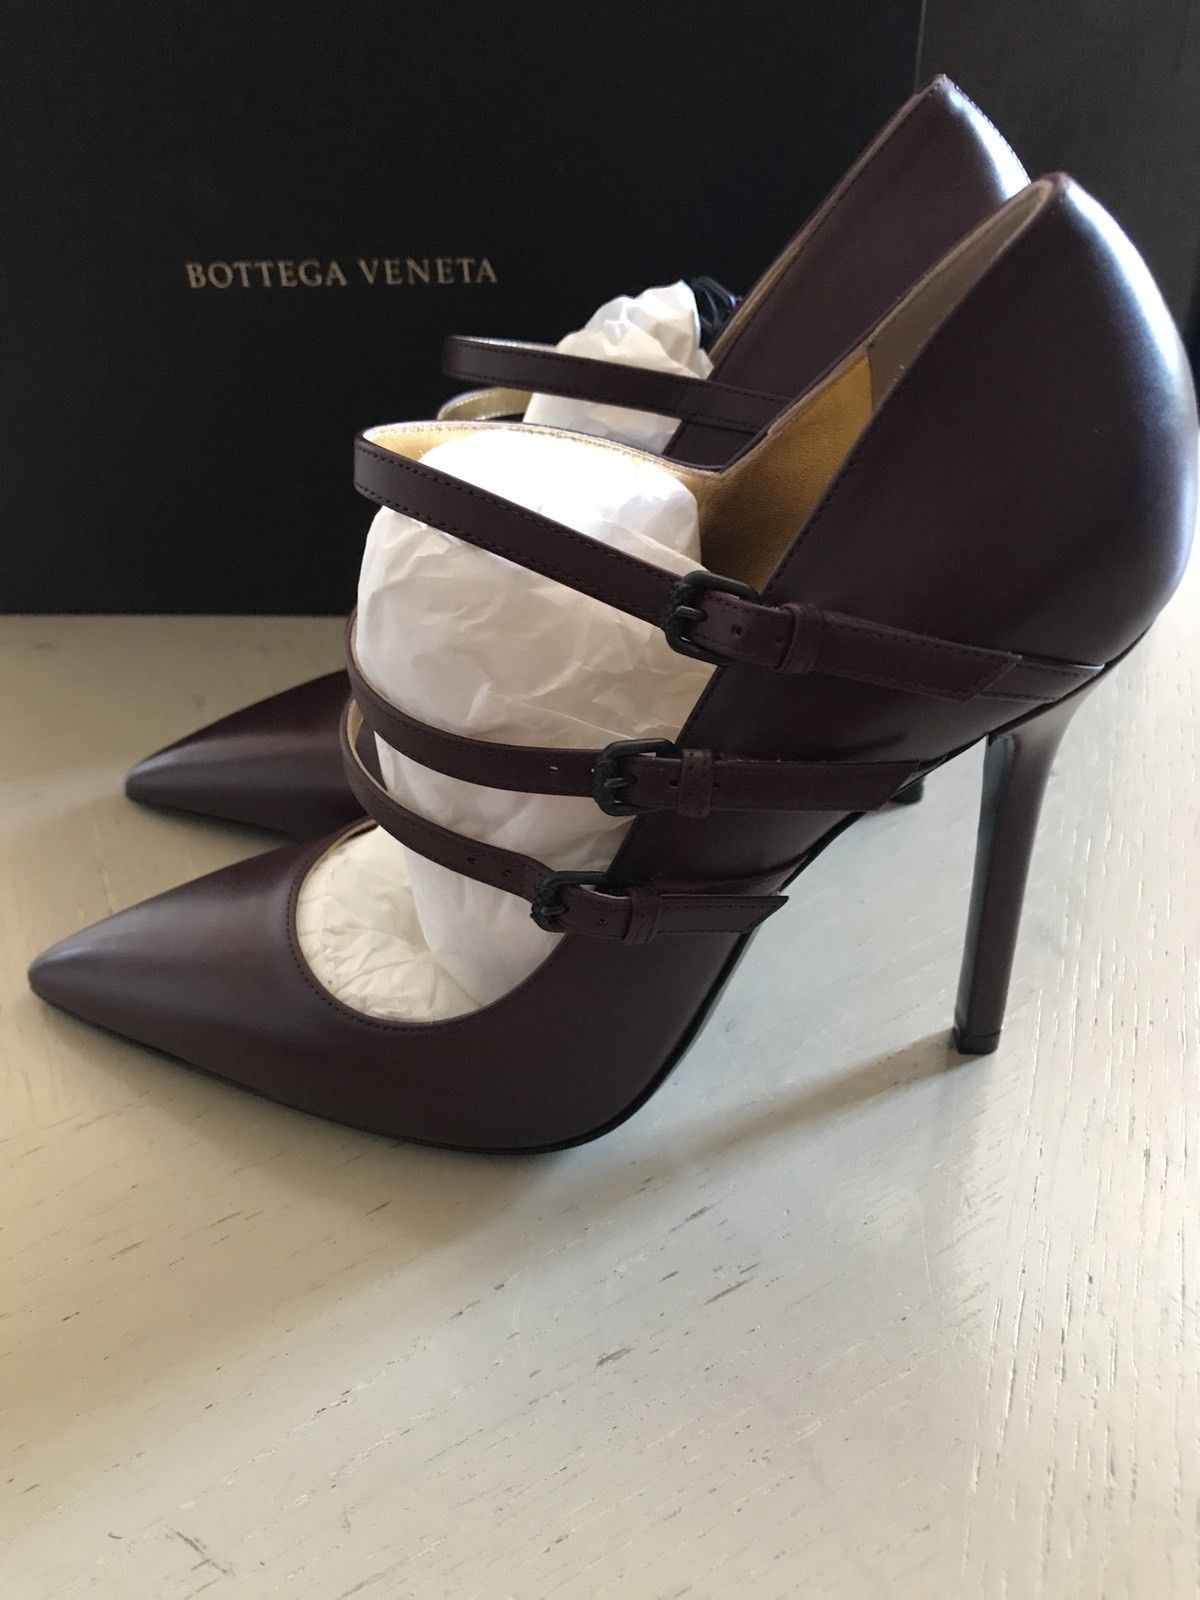 NIB $740 Bottega Veneta Women's Leather Shoes Burgundy 9 US ( 39 Eu ) 443156 - BAYSUPERSTORE